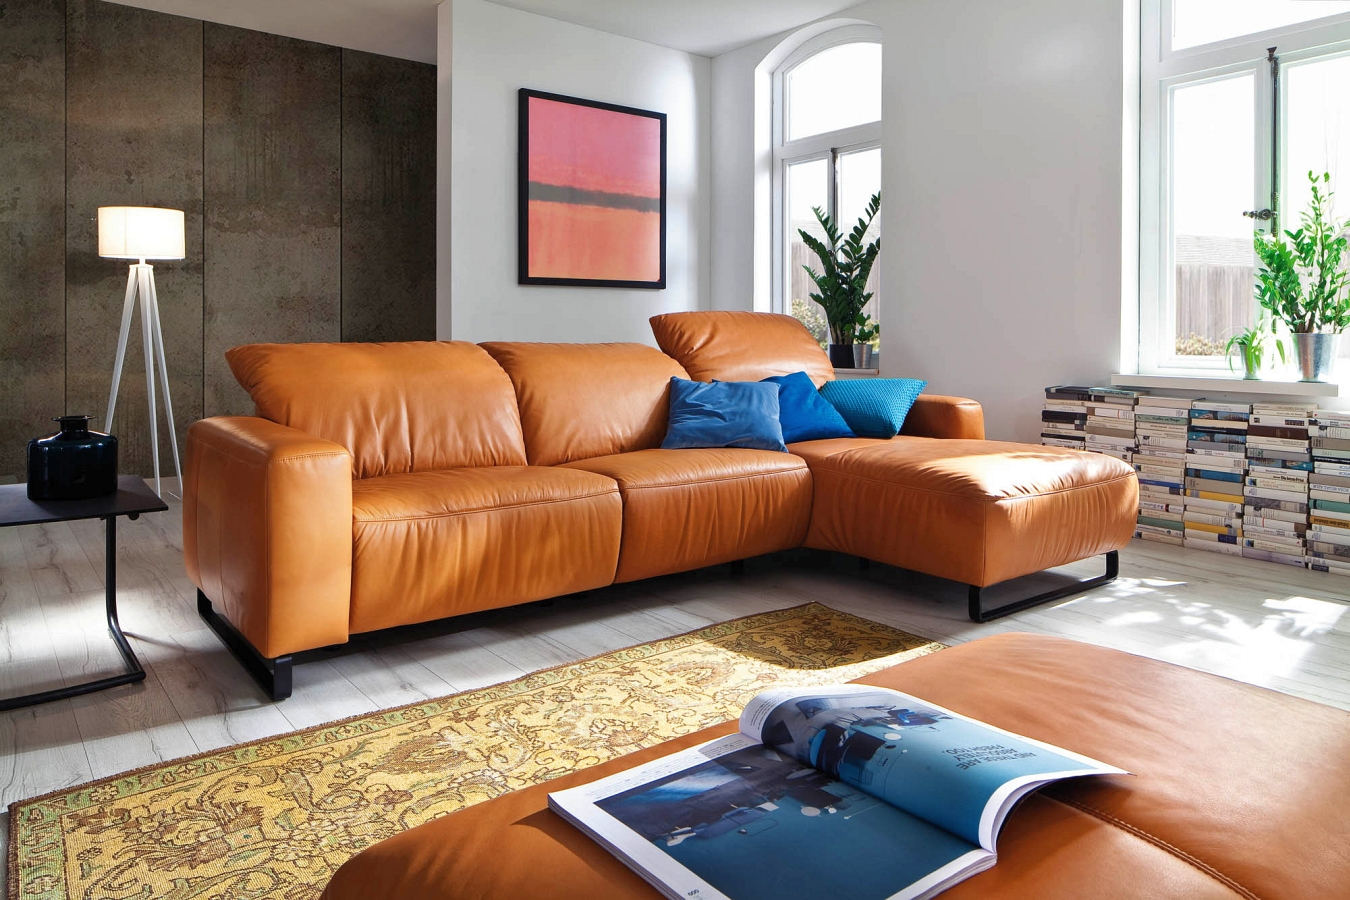 Candy Couchgarnitur Candy Sofa Wilson Dekoration Image Idee